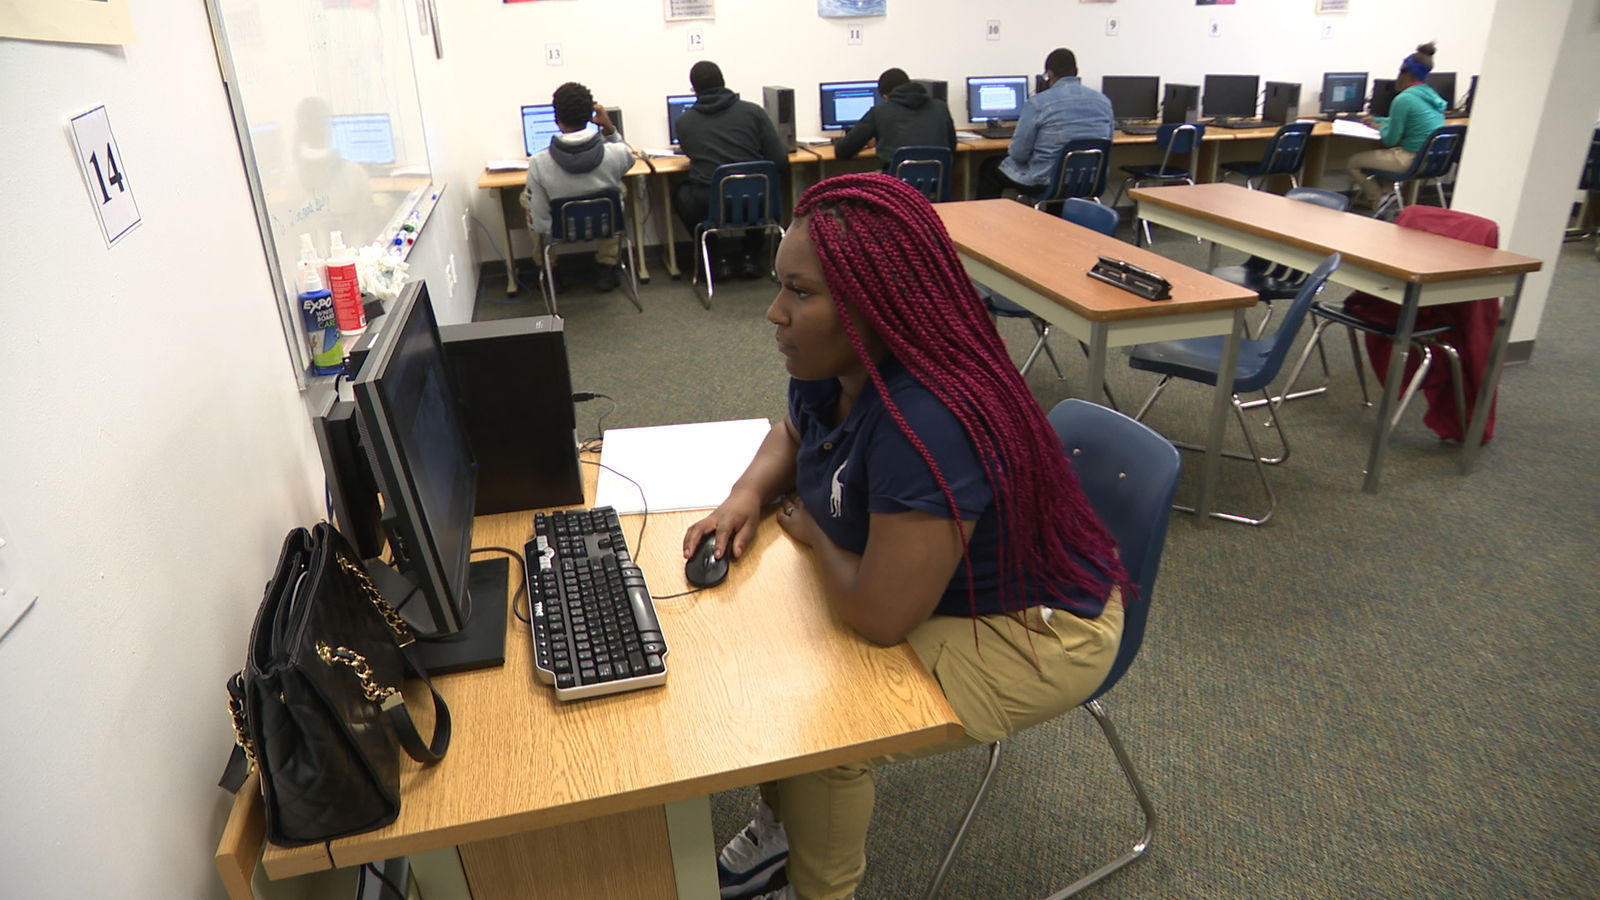 Adrienne Bowman, a student in the Jennings School District, works on a classroom project (Photo: Alex Brauer, Sinclair Broadcast Group)